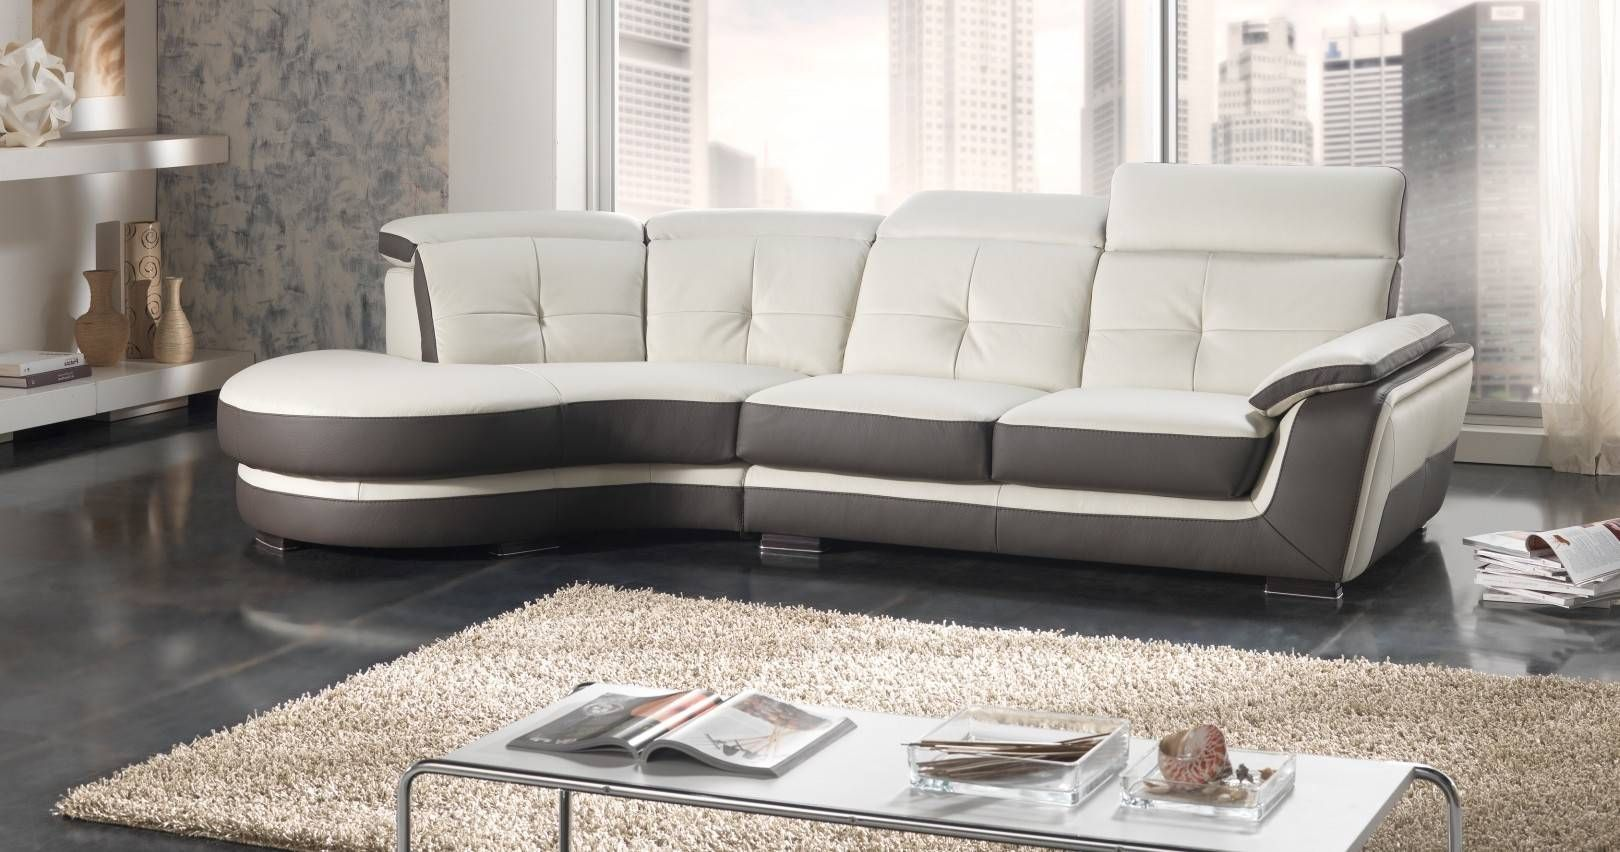 Canaped Canape D Angle En Solde Solde Canape Angle Cuir Center In 2020 Home Decor Home Sectional Couch